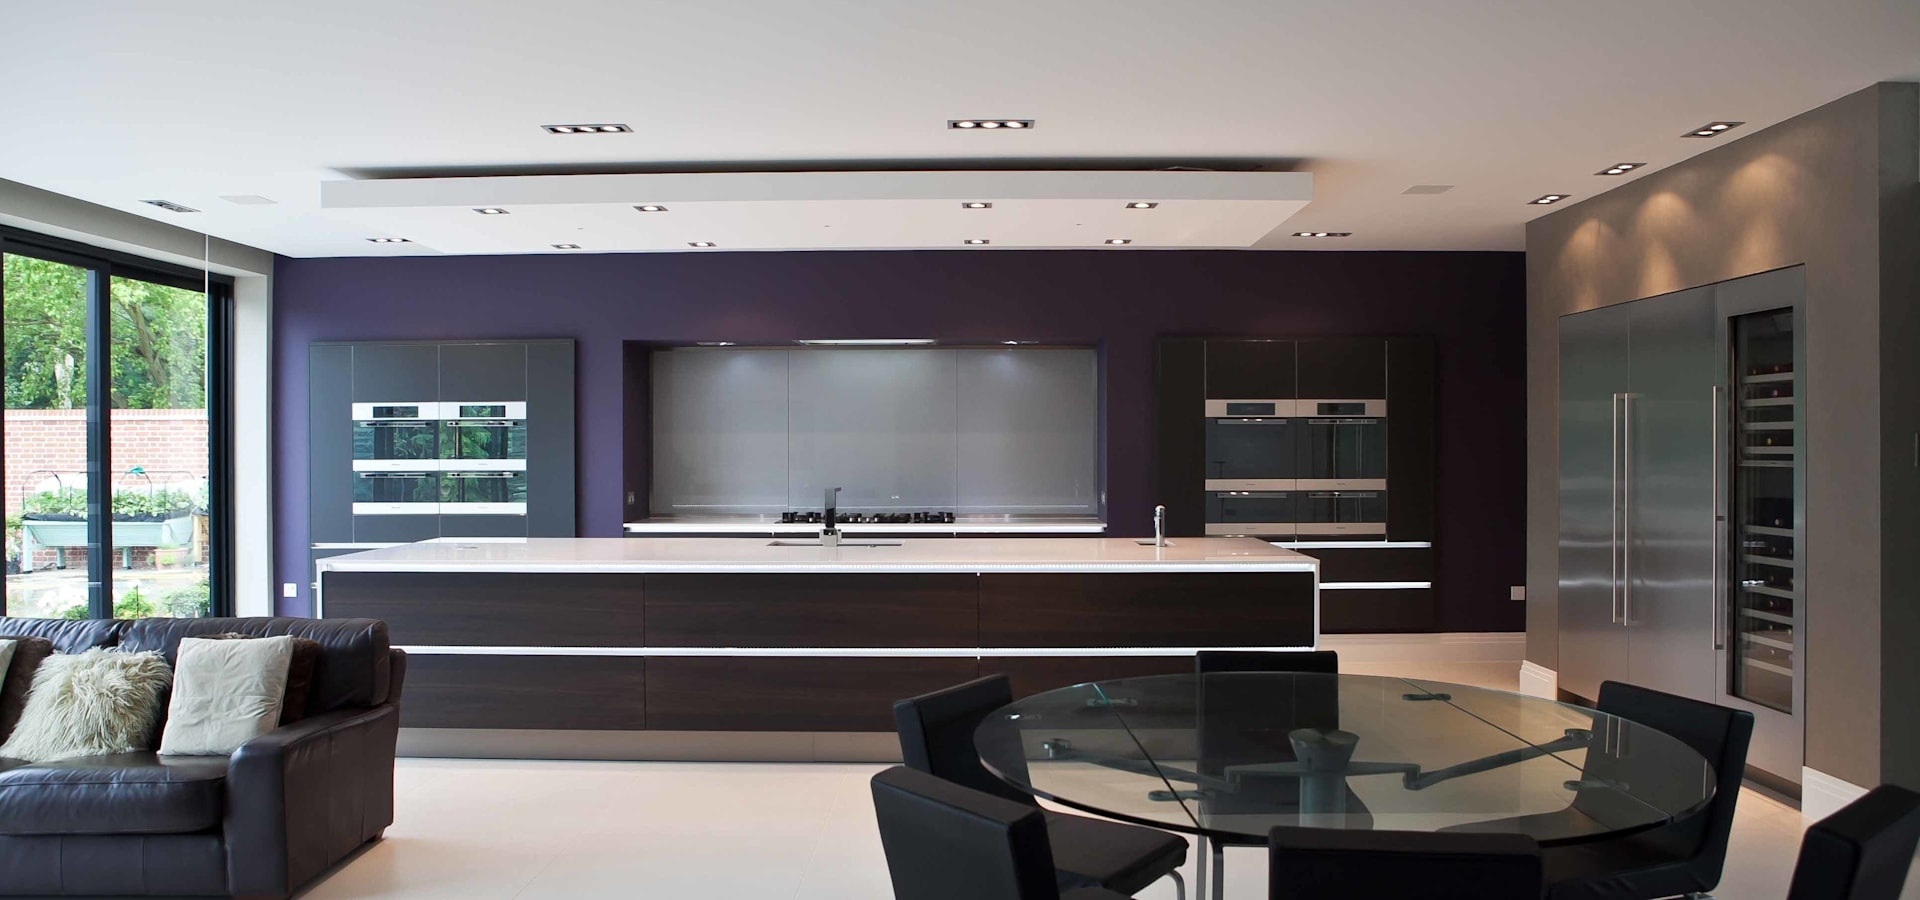 Excelsior Kitchens Limited